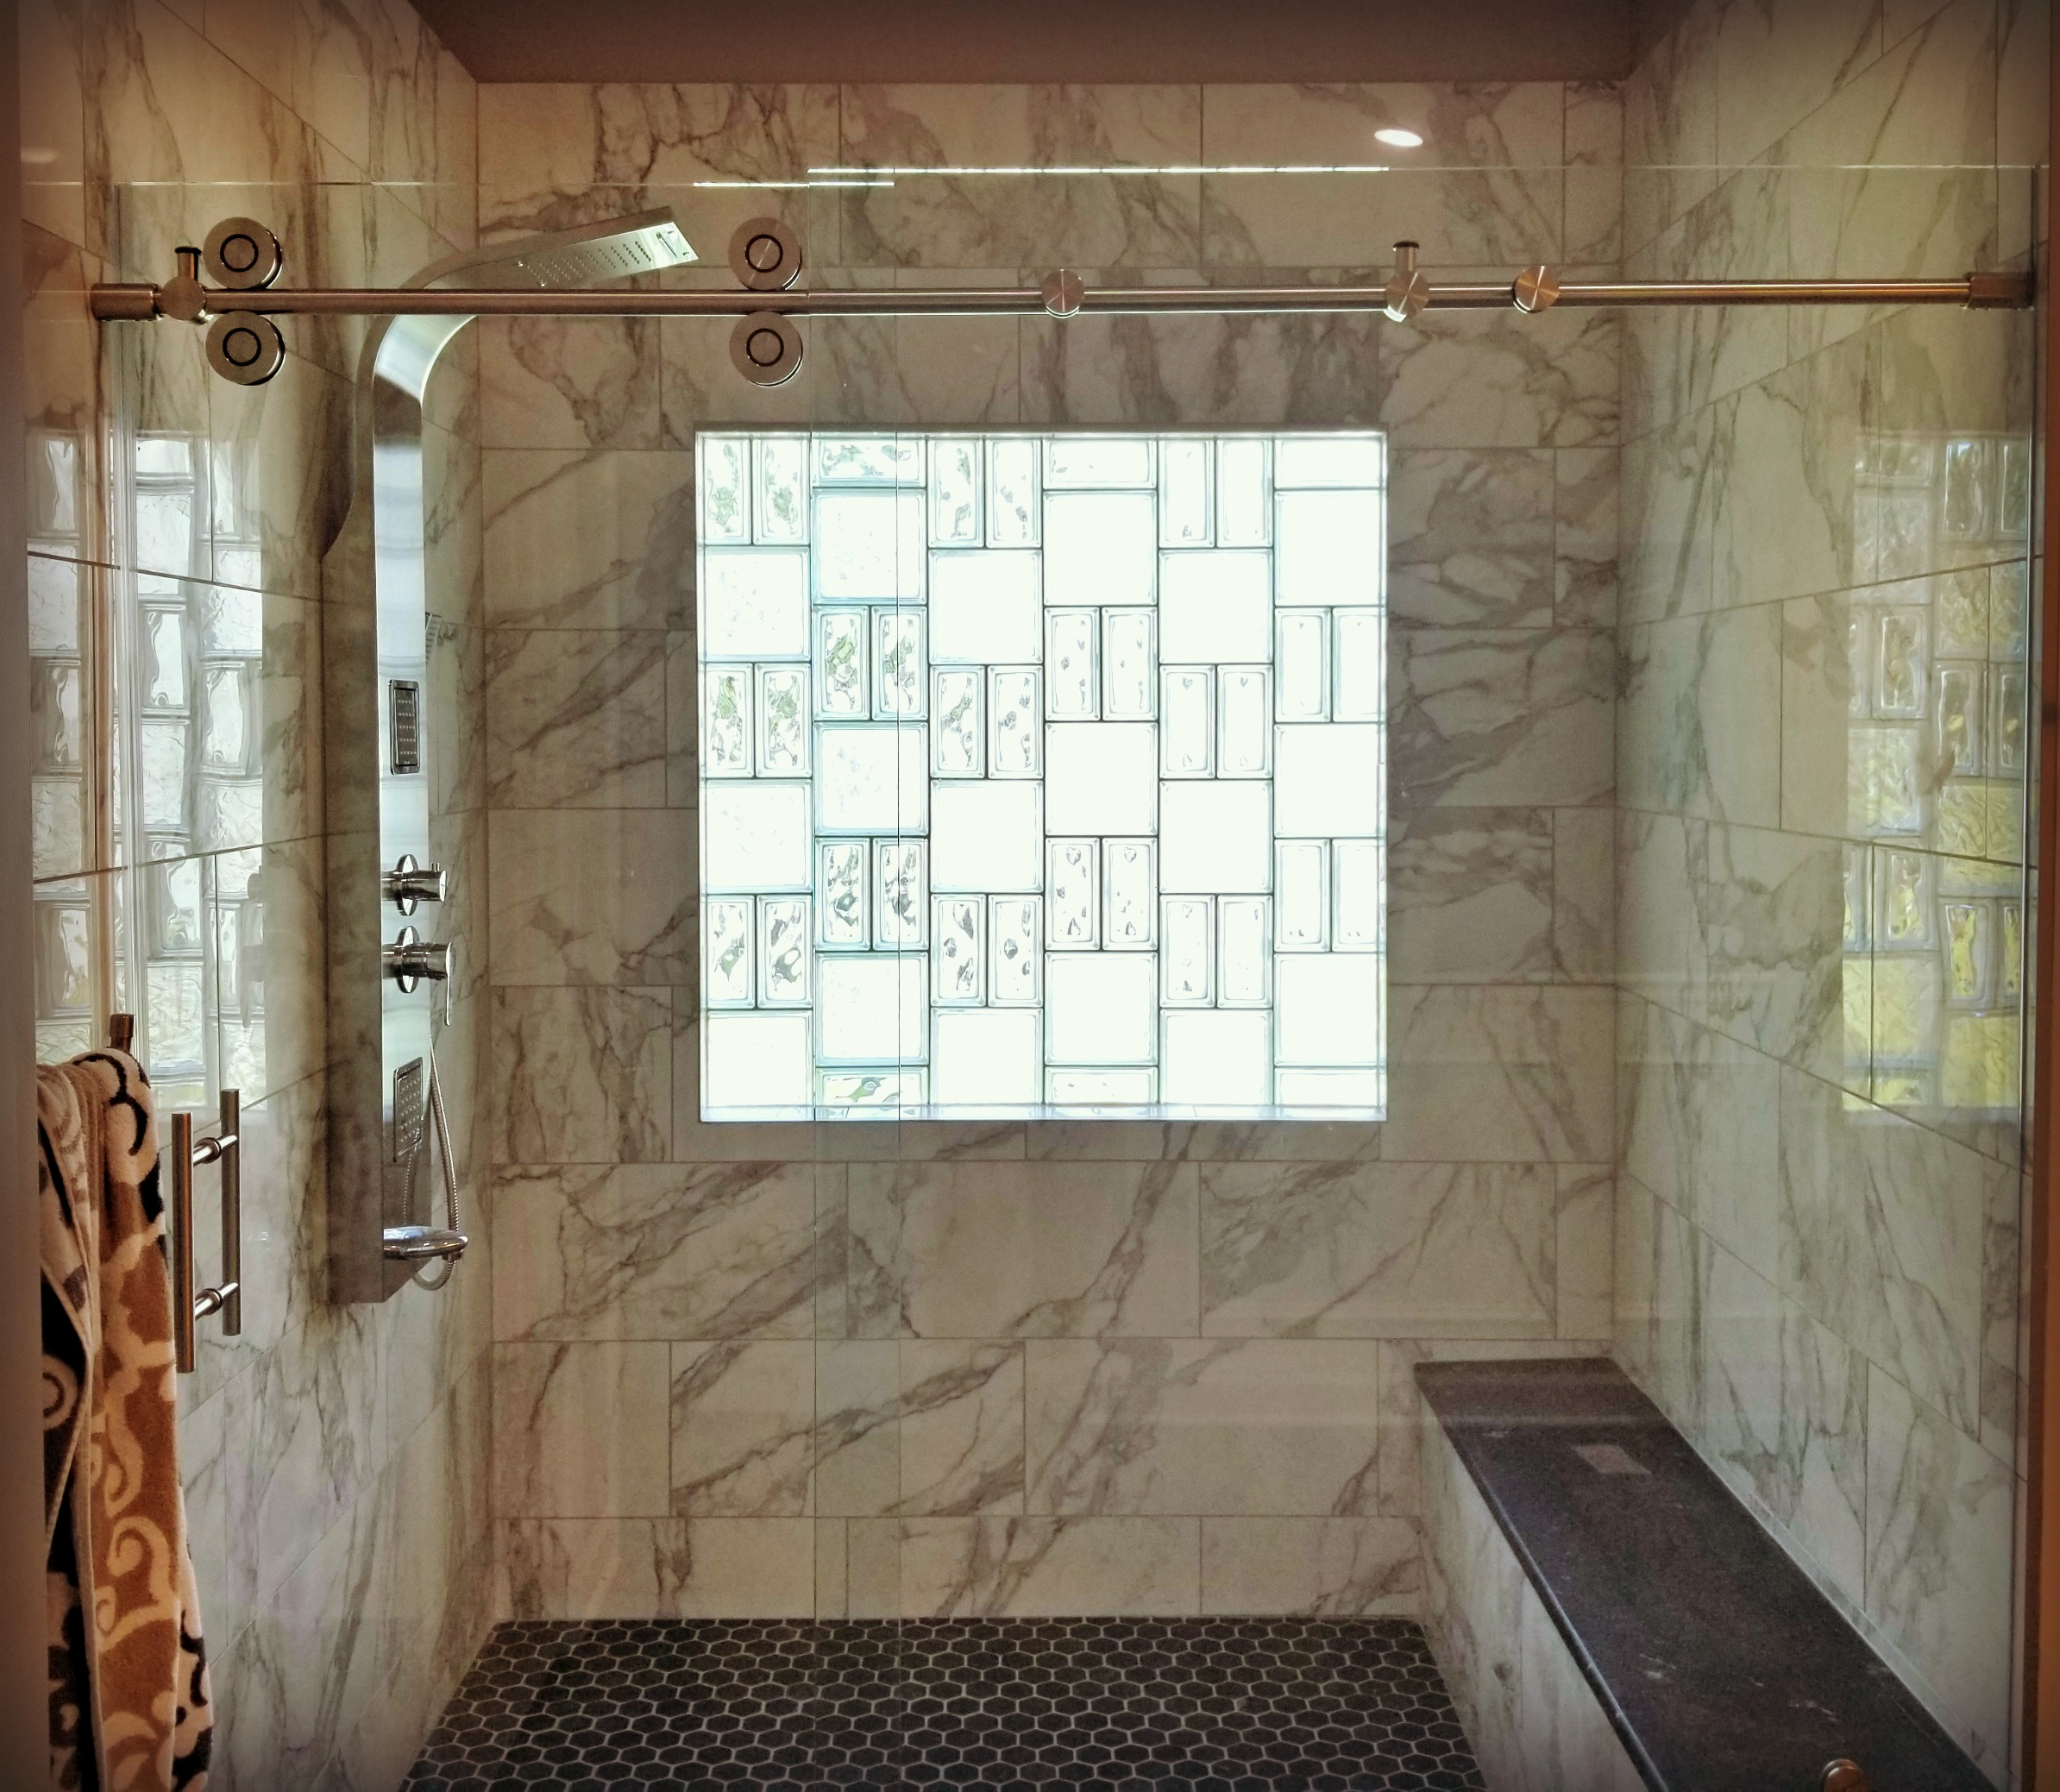 - Marble tile in showercustom glass block windowBrushed nickel shower towerCustom sliding shower glass door